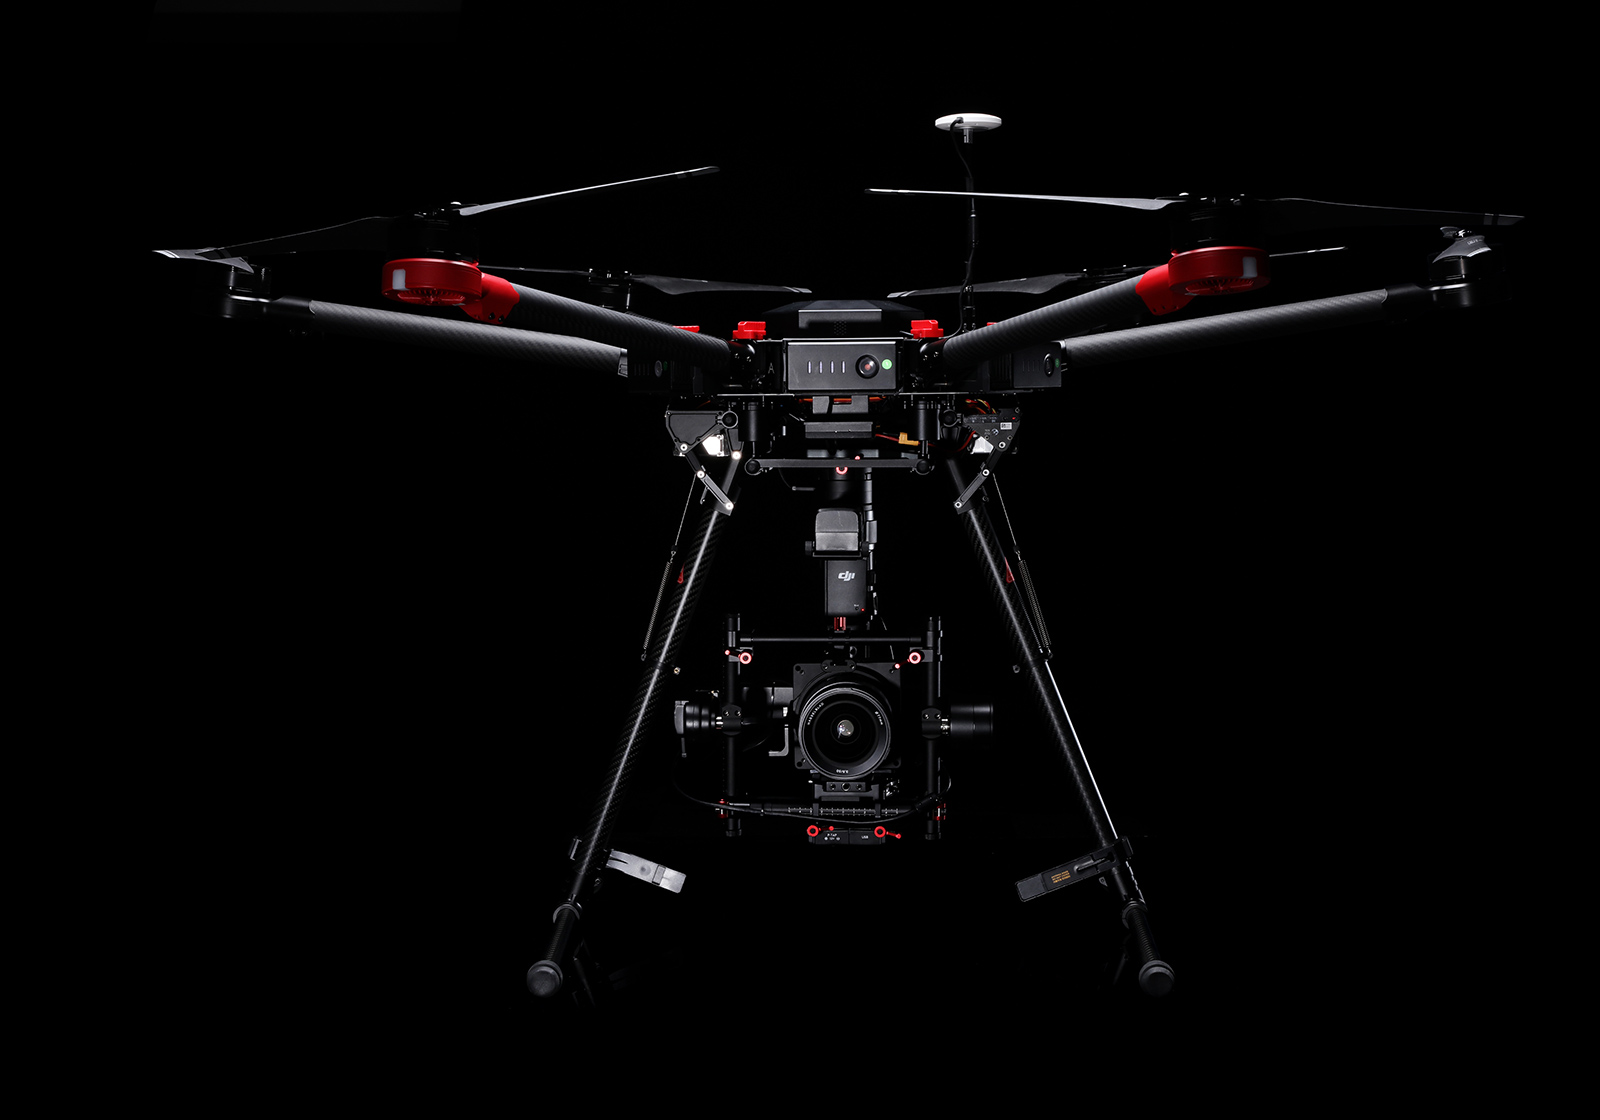 """Hasselblad And DJI Join Forces For Awesome New """"Aerial Photography Package"""" - Resource"""